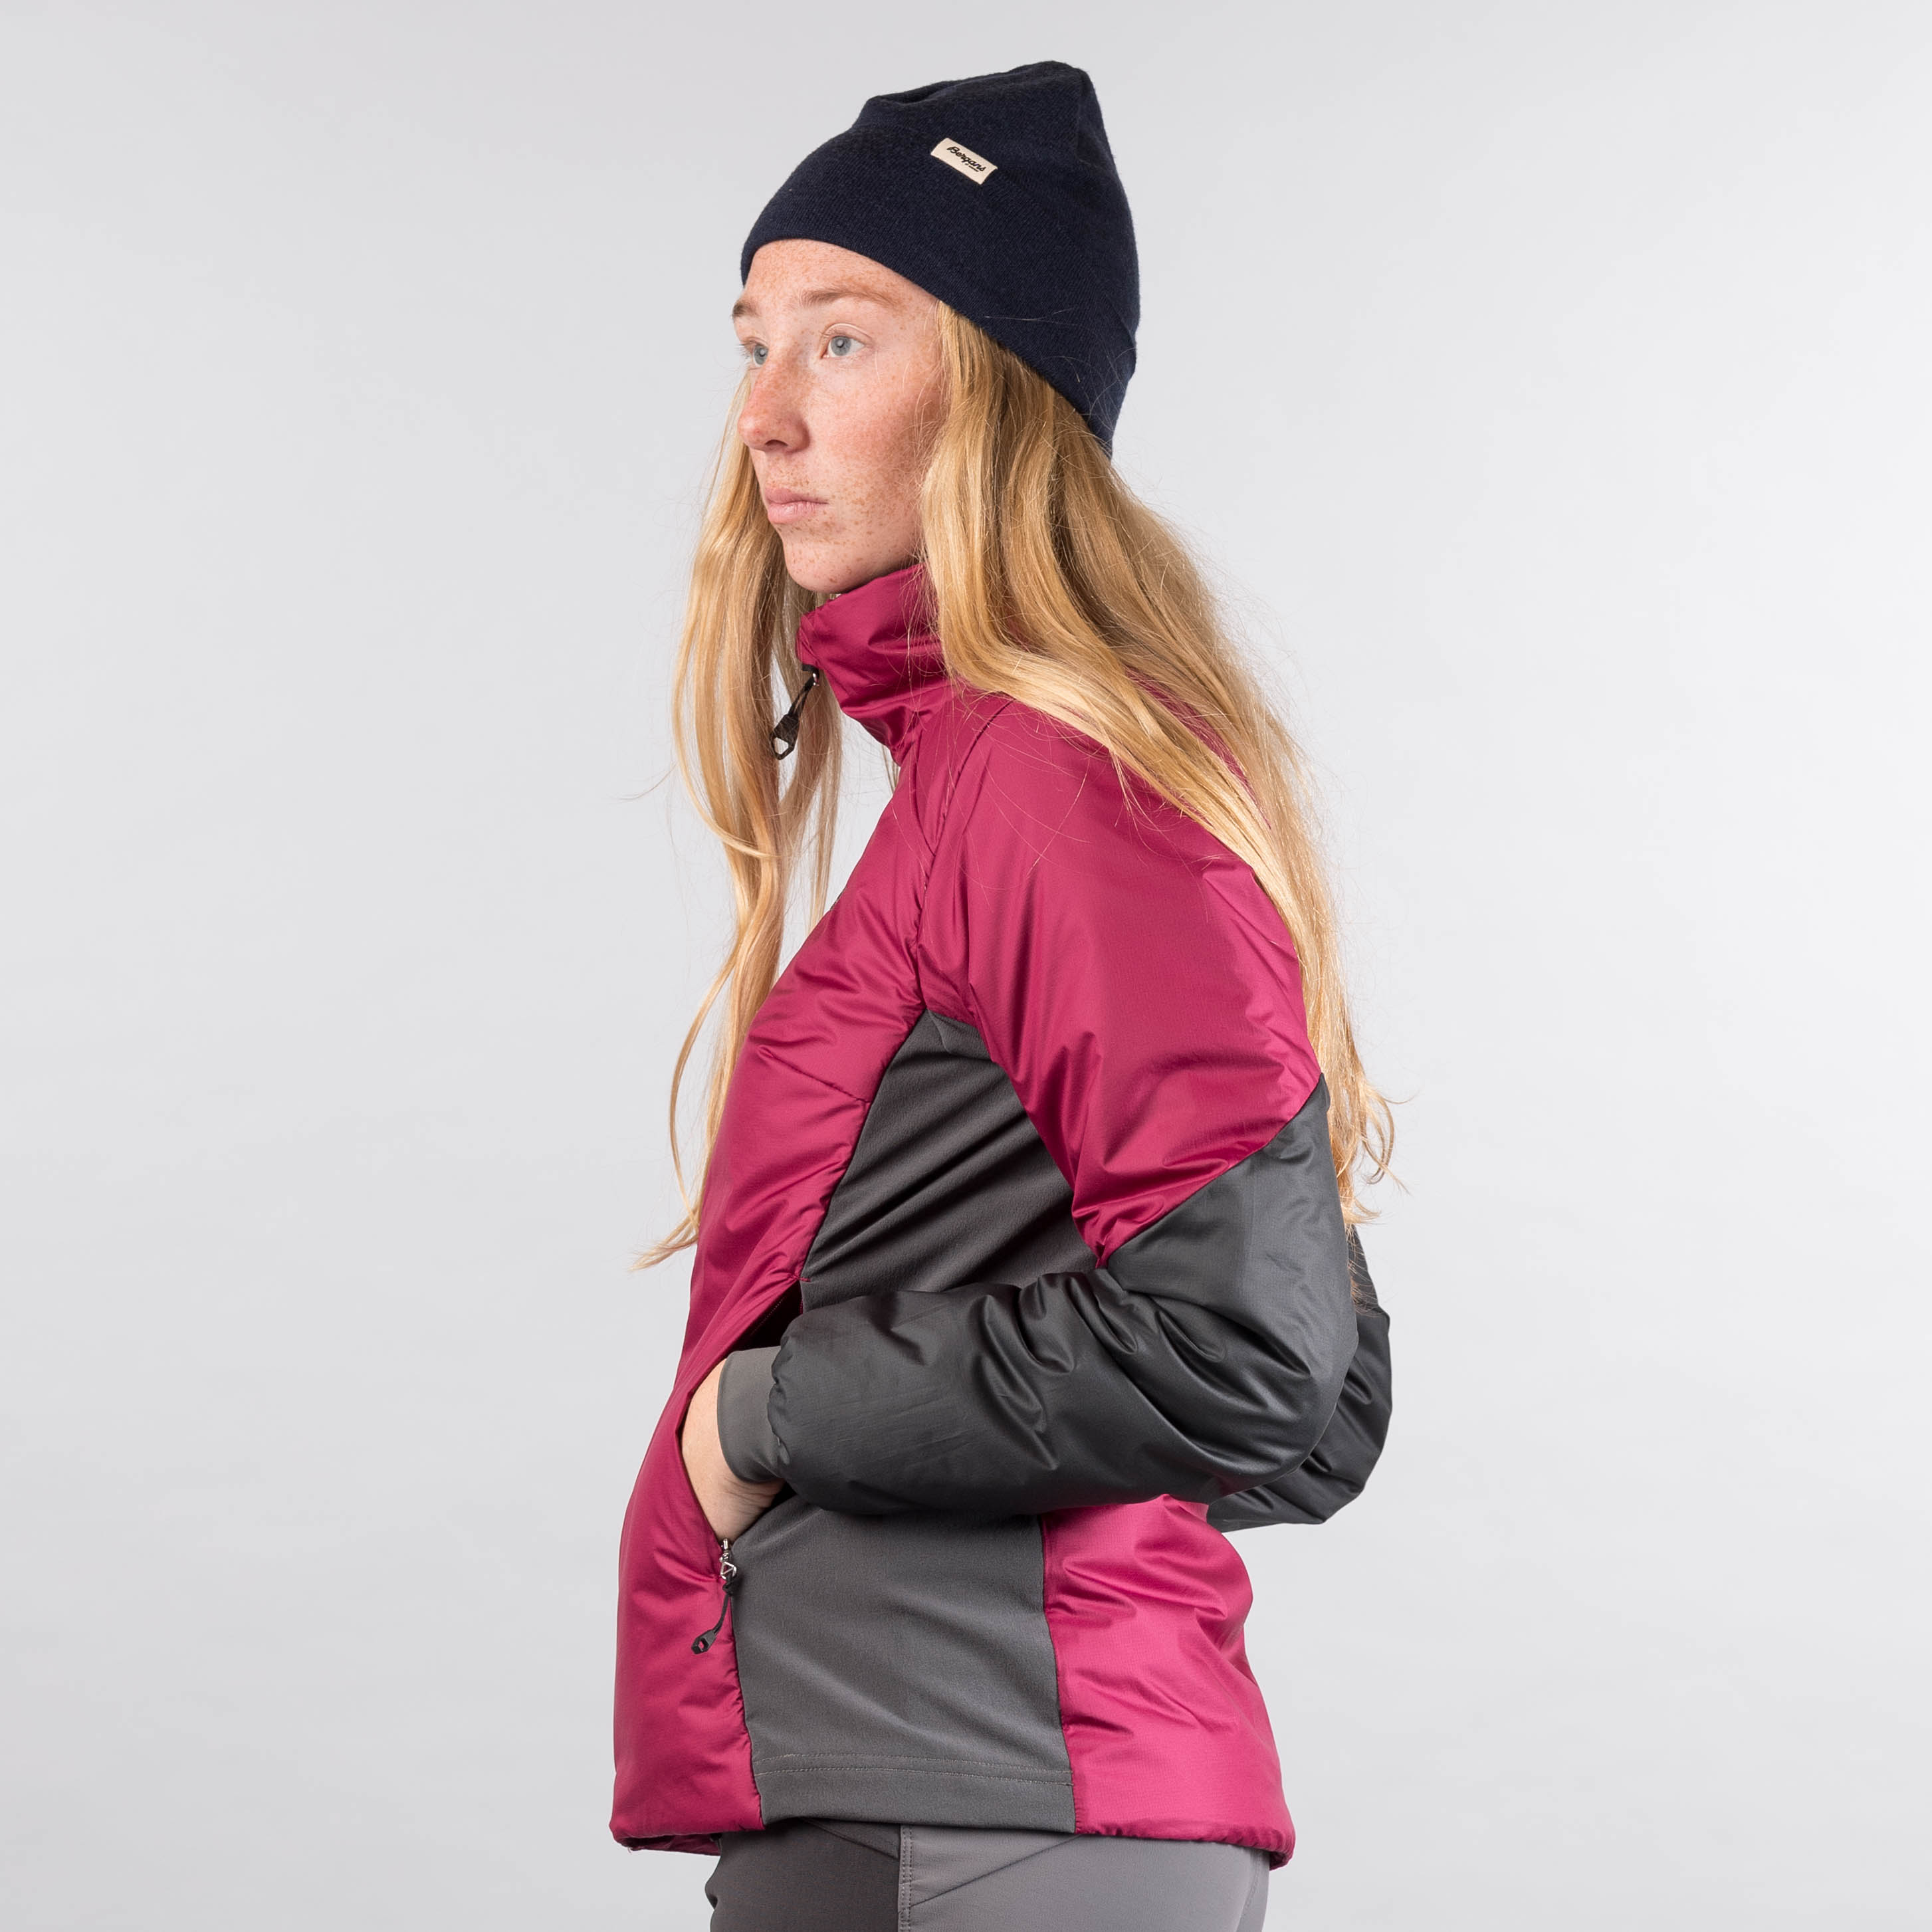 Rabot 365 Insulated W Jacket